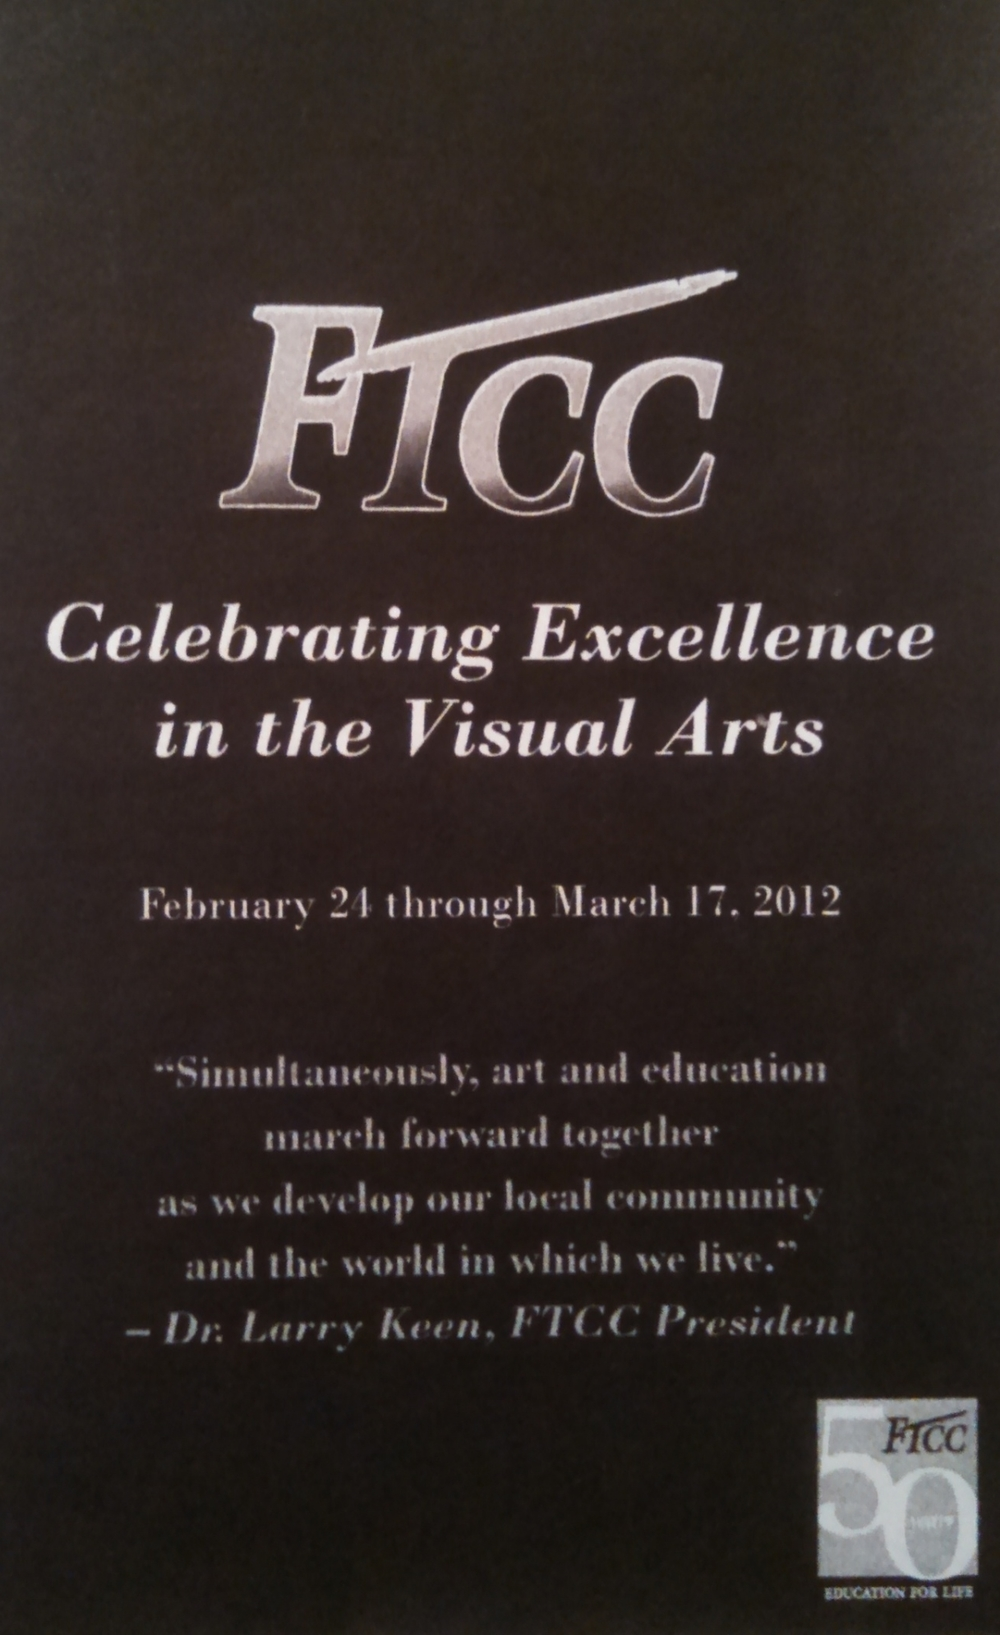 FTCC Celebrating Excellence in the Visual Arts, Juried Show, February 24 - March 17, 2012, 3rd Place